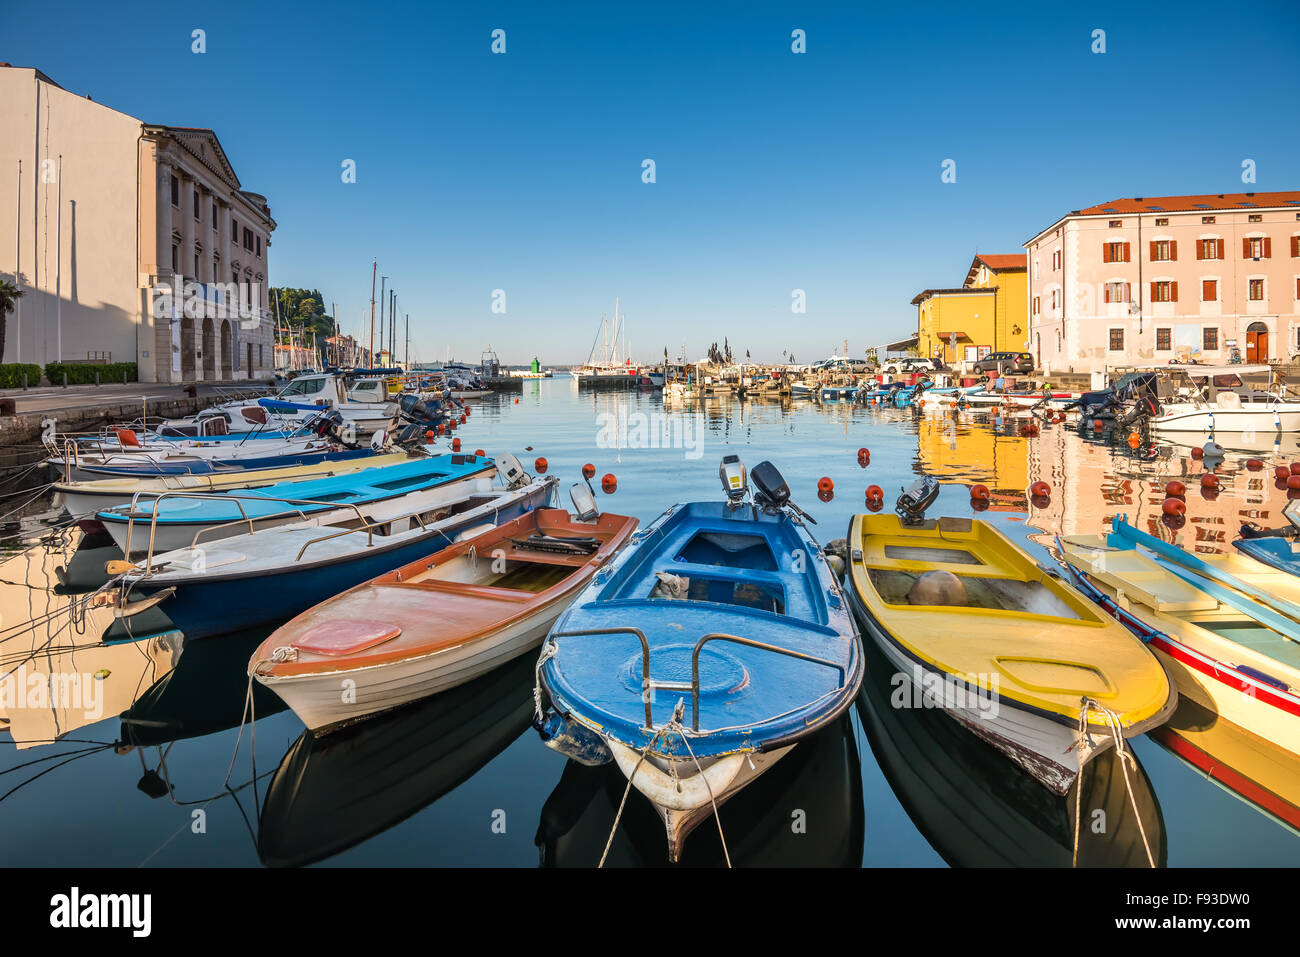 View of the Venetian Port of Piran, Slovenia with Boats in Foreground and Clear Blue Sky - Stock Image